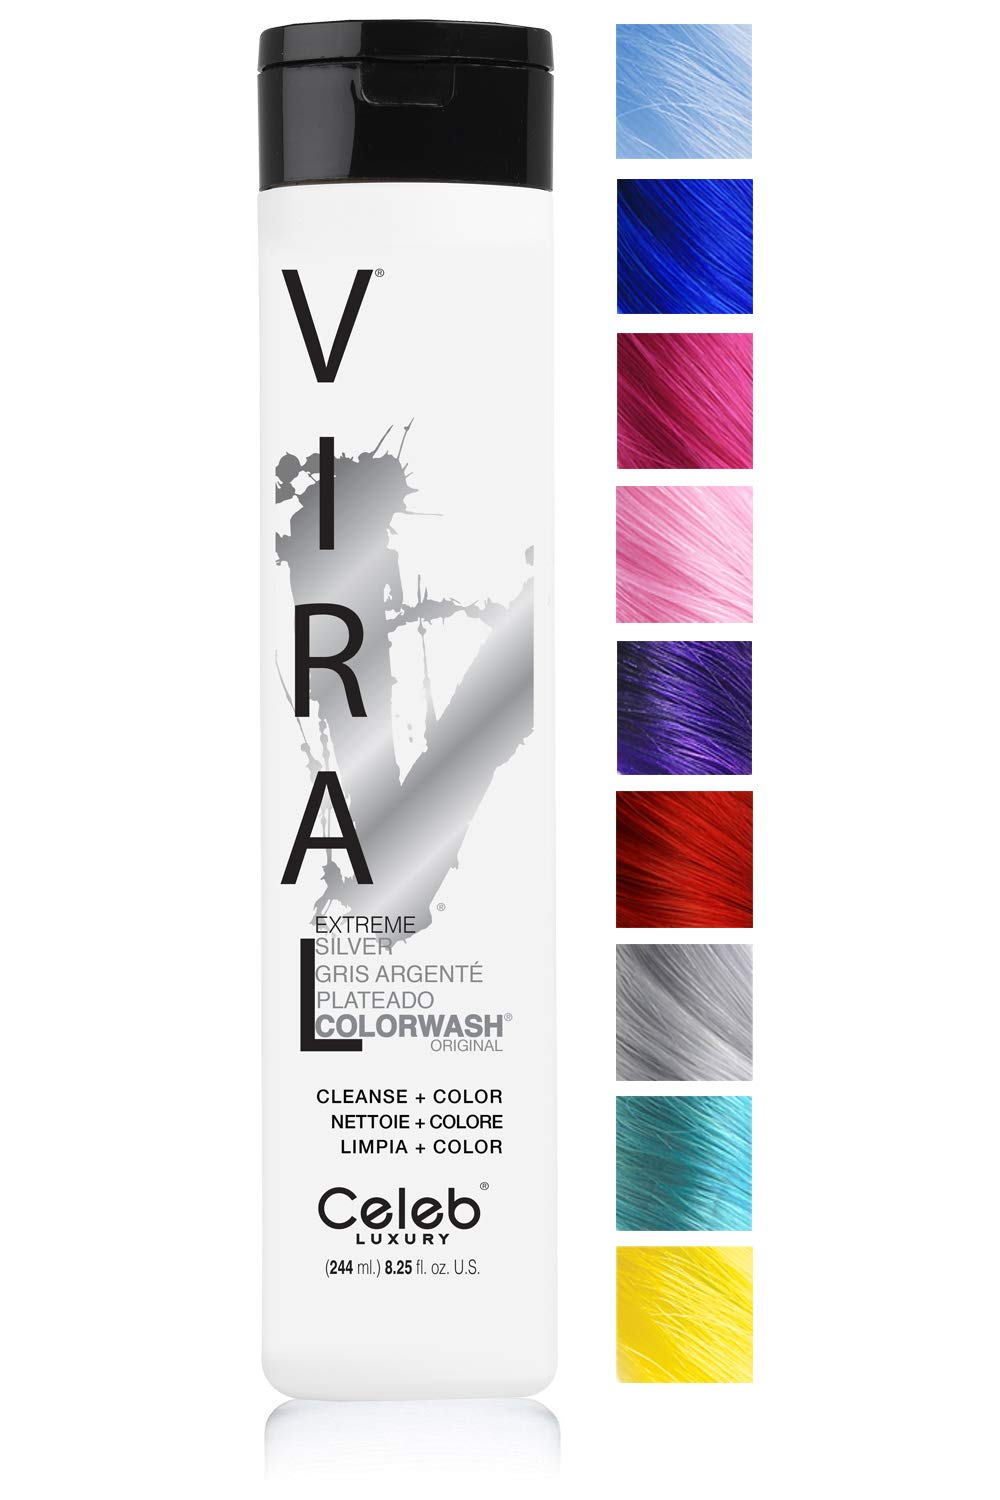 Celeb Luxury Viral Colorwash: Silver Color Depositing Shampoo Concentrate, 10 Vivid and Pastel Colors, Stops Fade, 1 Quick Wash, Cleanse + Color, Sulfate-Free, Cruelty-Free, 100% Vegan by CELEB LUXURY